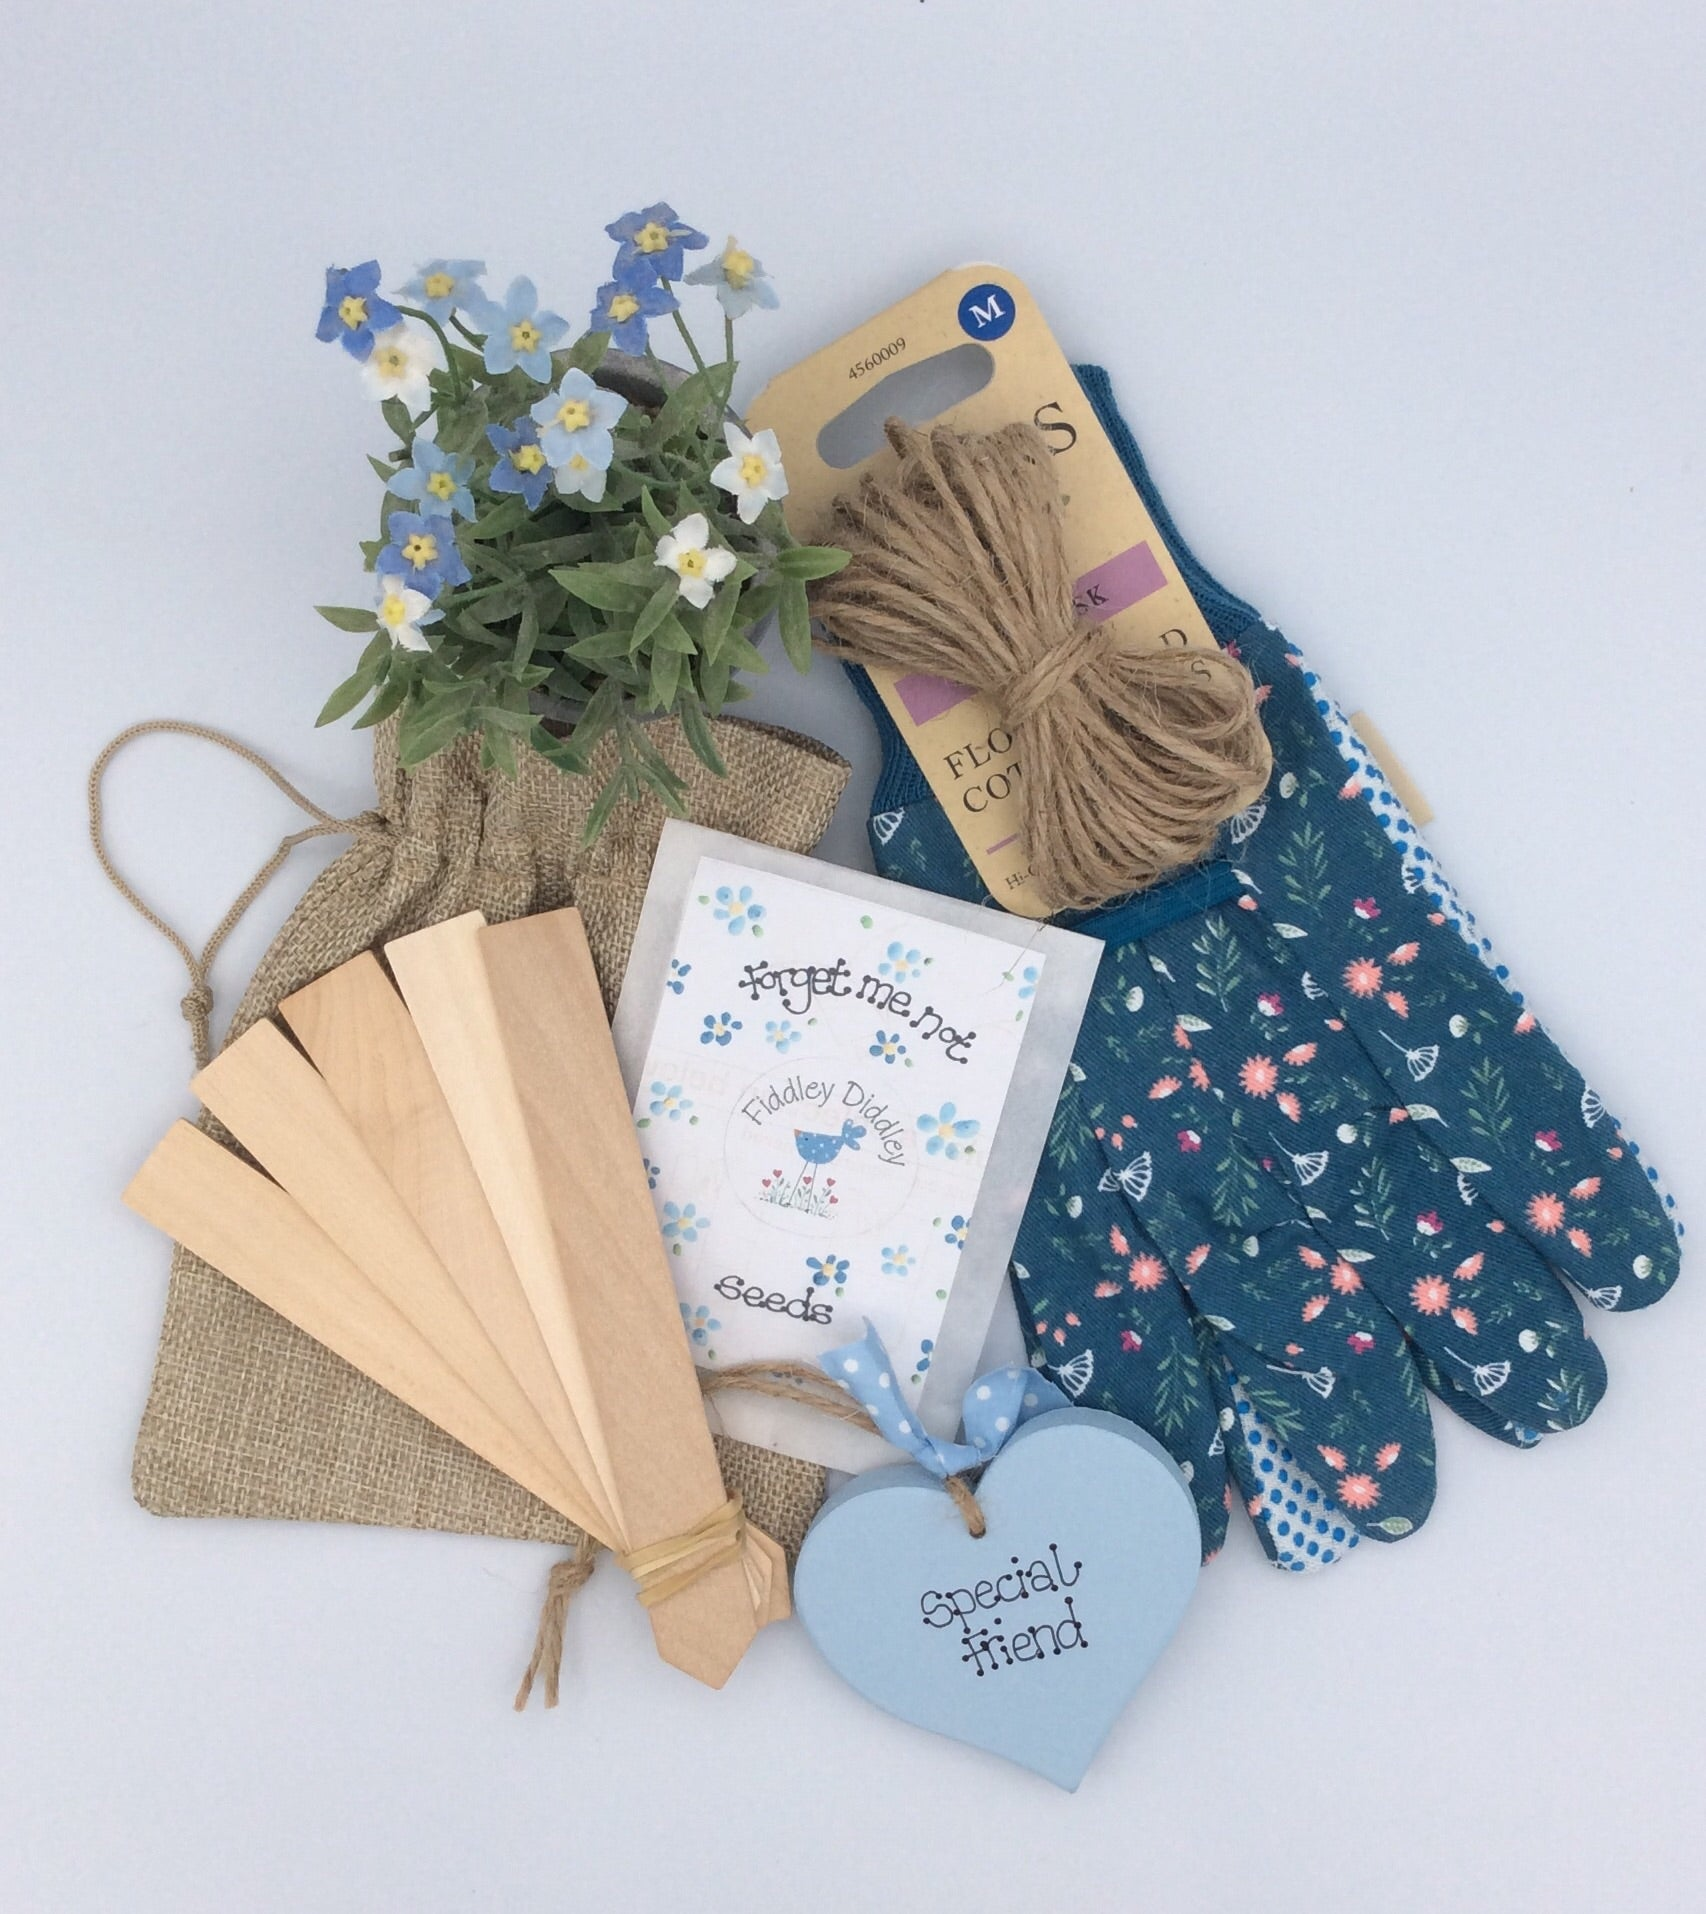 Beautiful handmade heart, gloves and forget me not gardening gift set